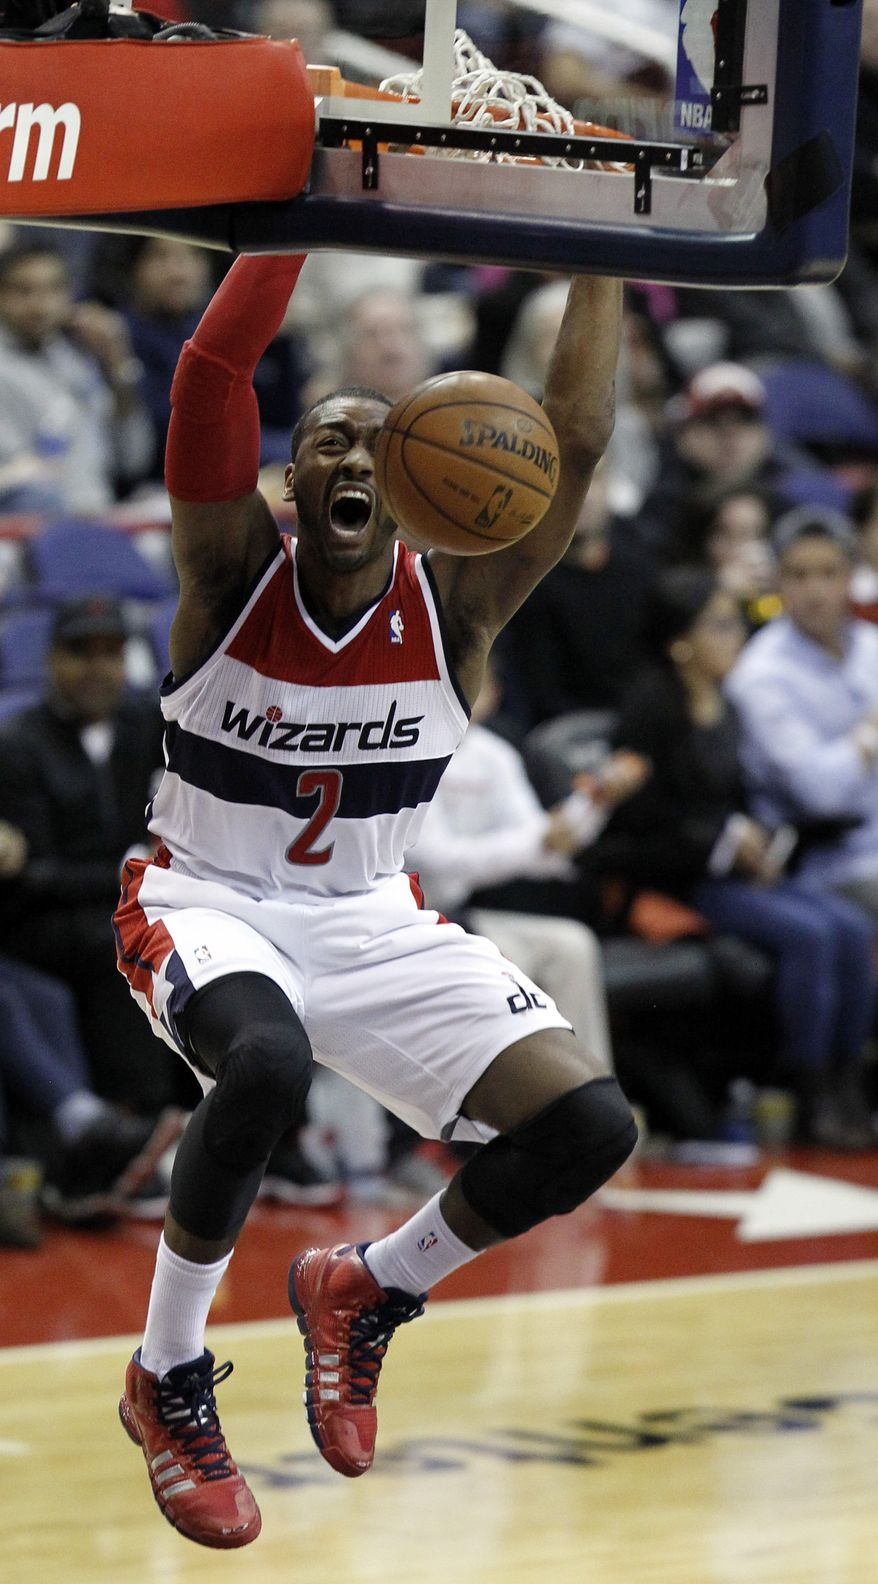 Washington Wizards guard John Wall reacts as he dunks the ball in the second half of an NBA basketball game against the Detroit Pistons, Saturday, Jan. 18, 2014, in Washington. Wall had 34 points, but the Pistons won 104-98. (AP Photo/Alex Brandon)